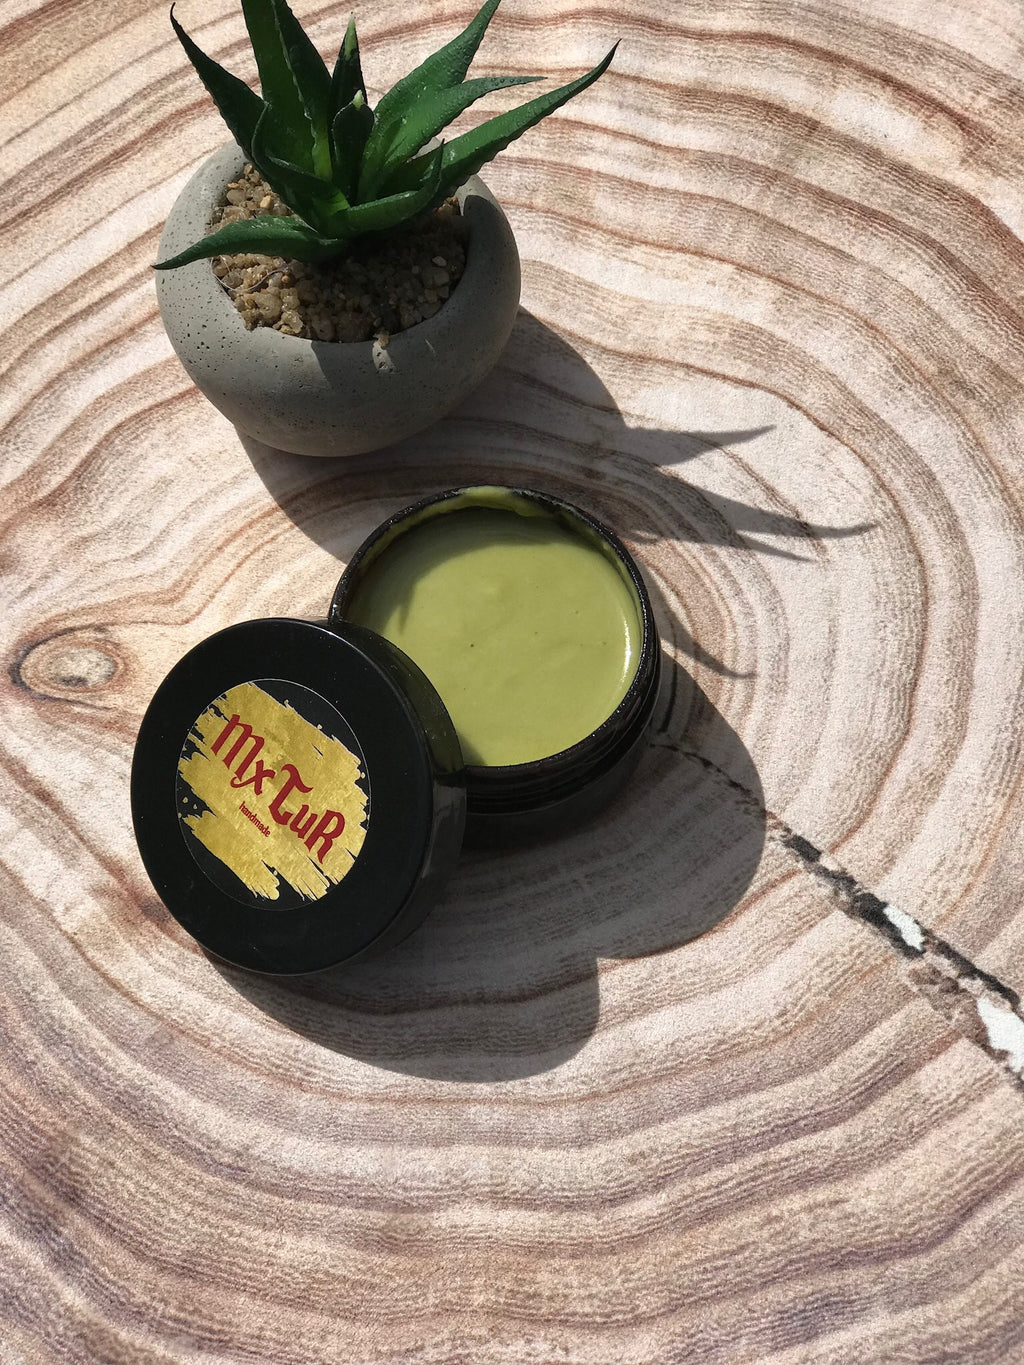 Matcha Face Mask -Mixtur,  Matcha Face Mask Mxtur, Face Mask Masks, Scrubs, Soaps, Matcha Face Mask skincare, Matcha Face Mask natural, [product_Type] Handcrafted